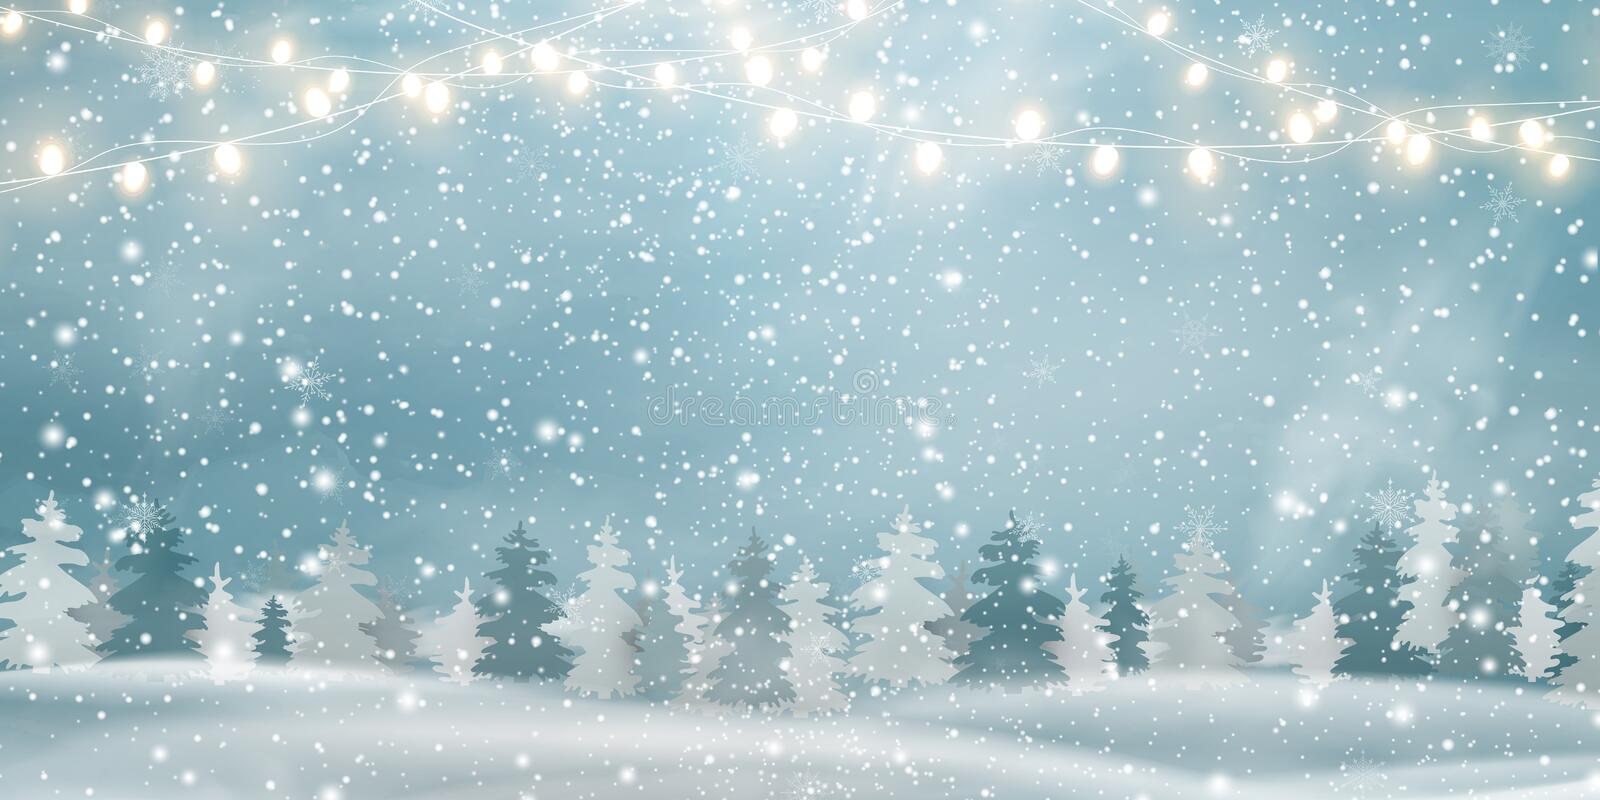 Christmas, Snowy Woodland landscape. Winter background. Holiday winter landscape for Merry Christmas with firs royalty free illustration